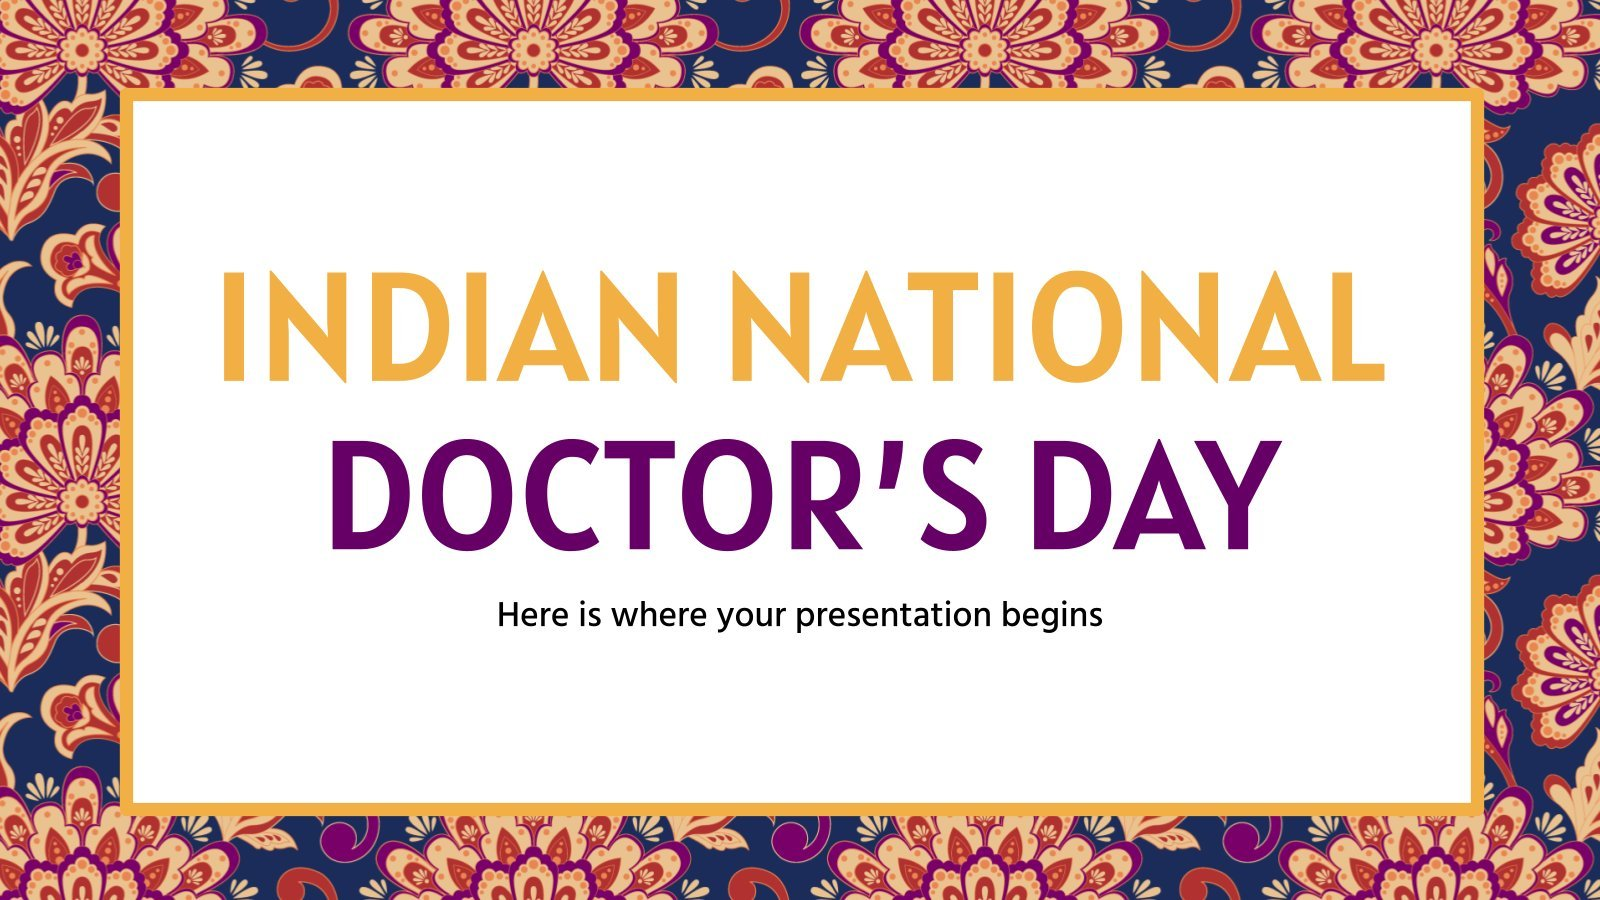 Indian National Doctor's Day presentation template